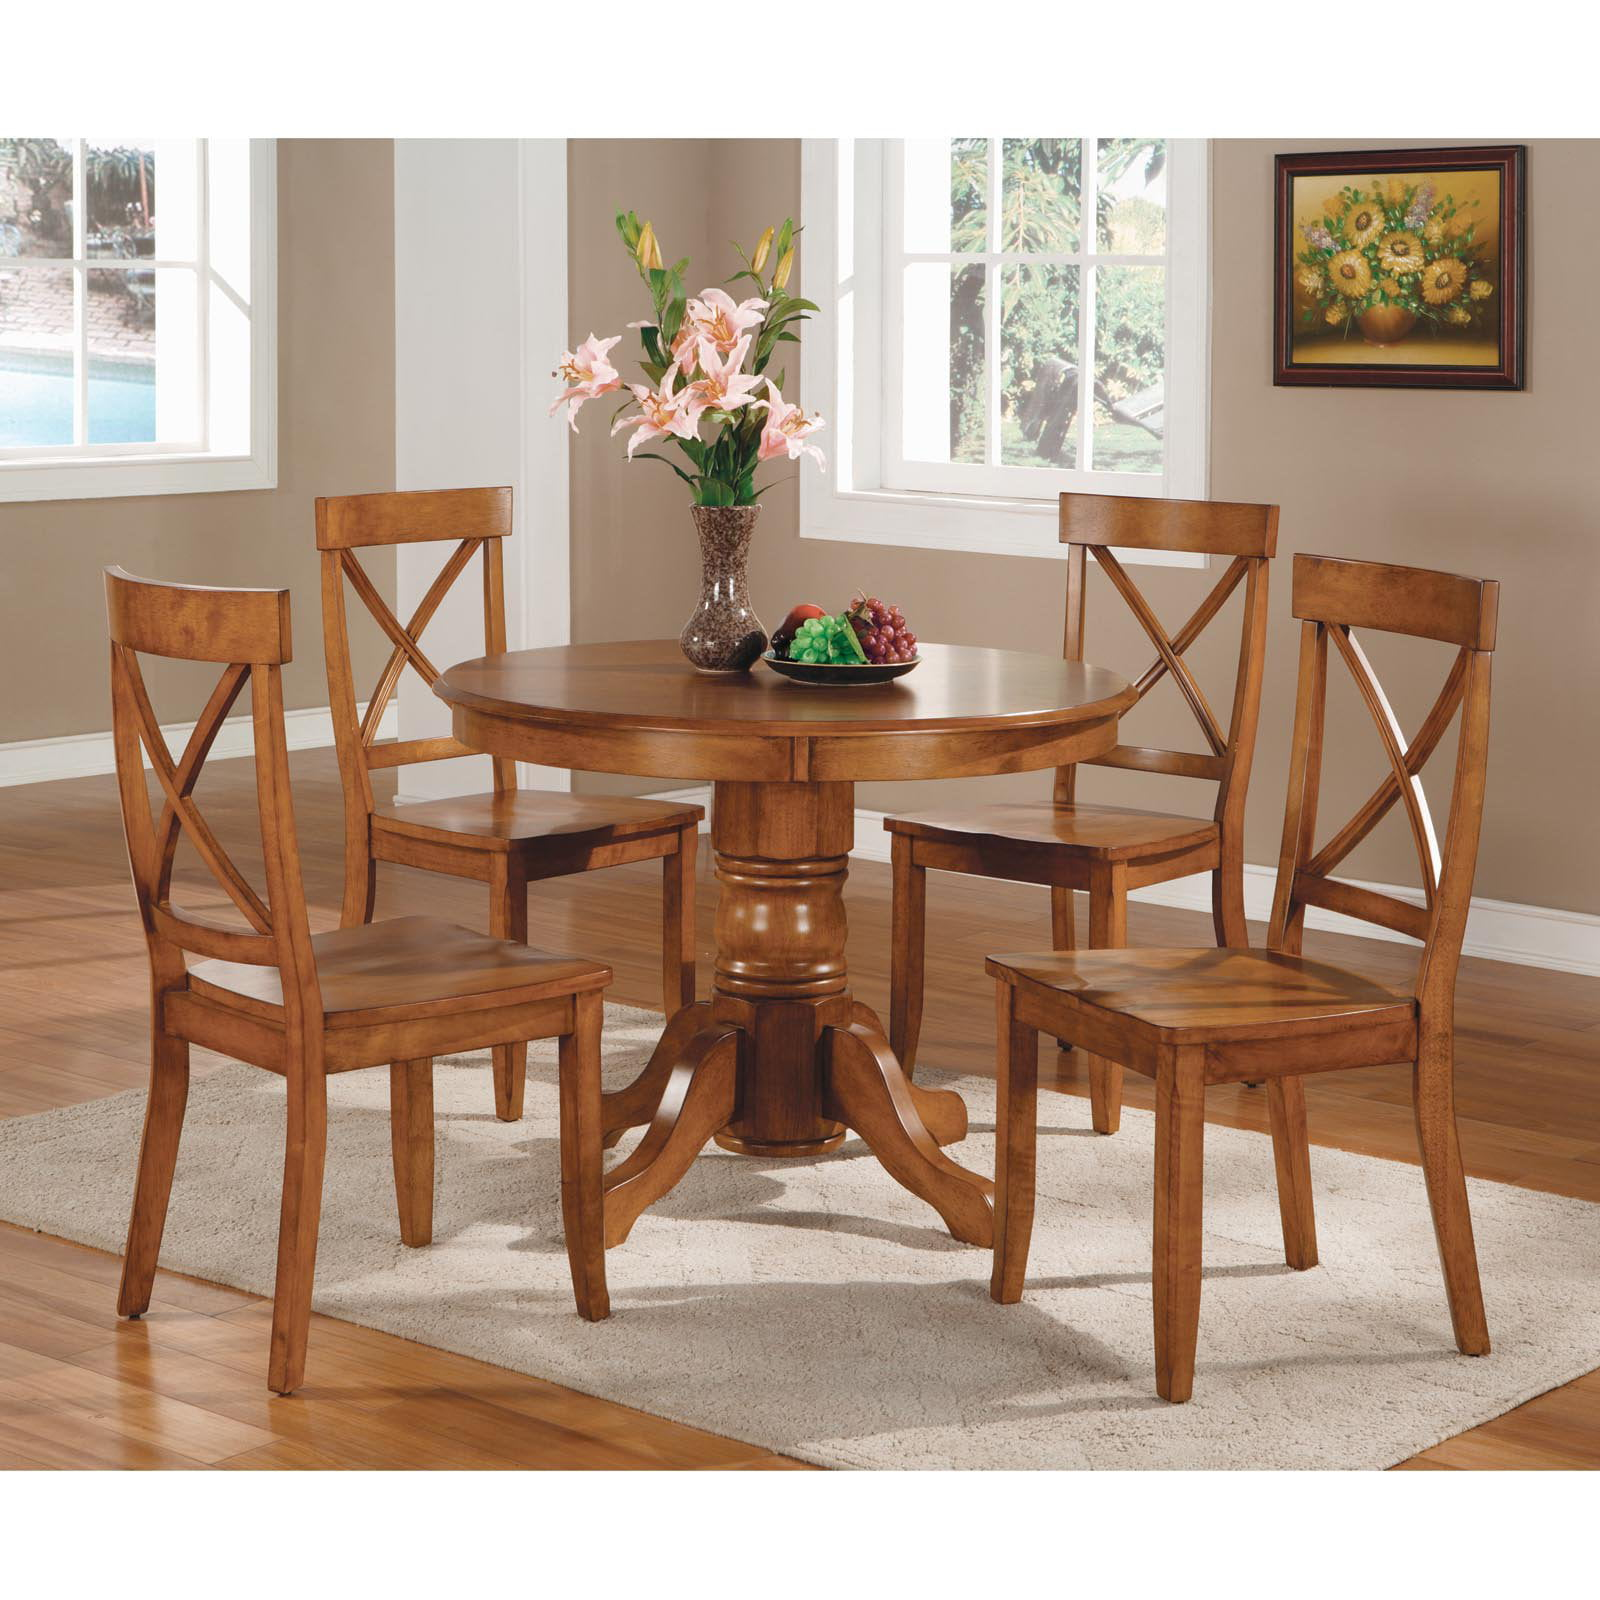 Home Styles Pedestal Dining Table, Cottage Oak